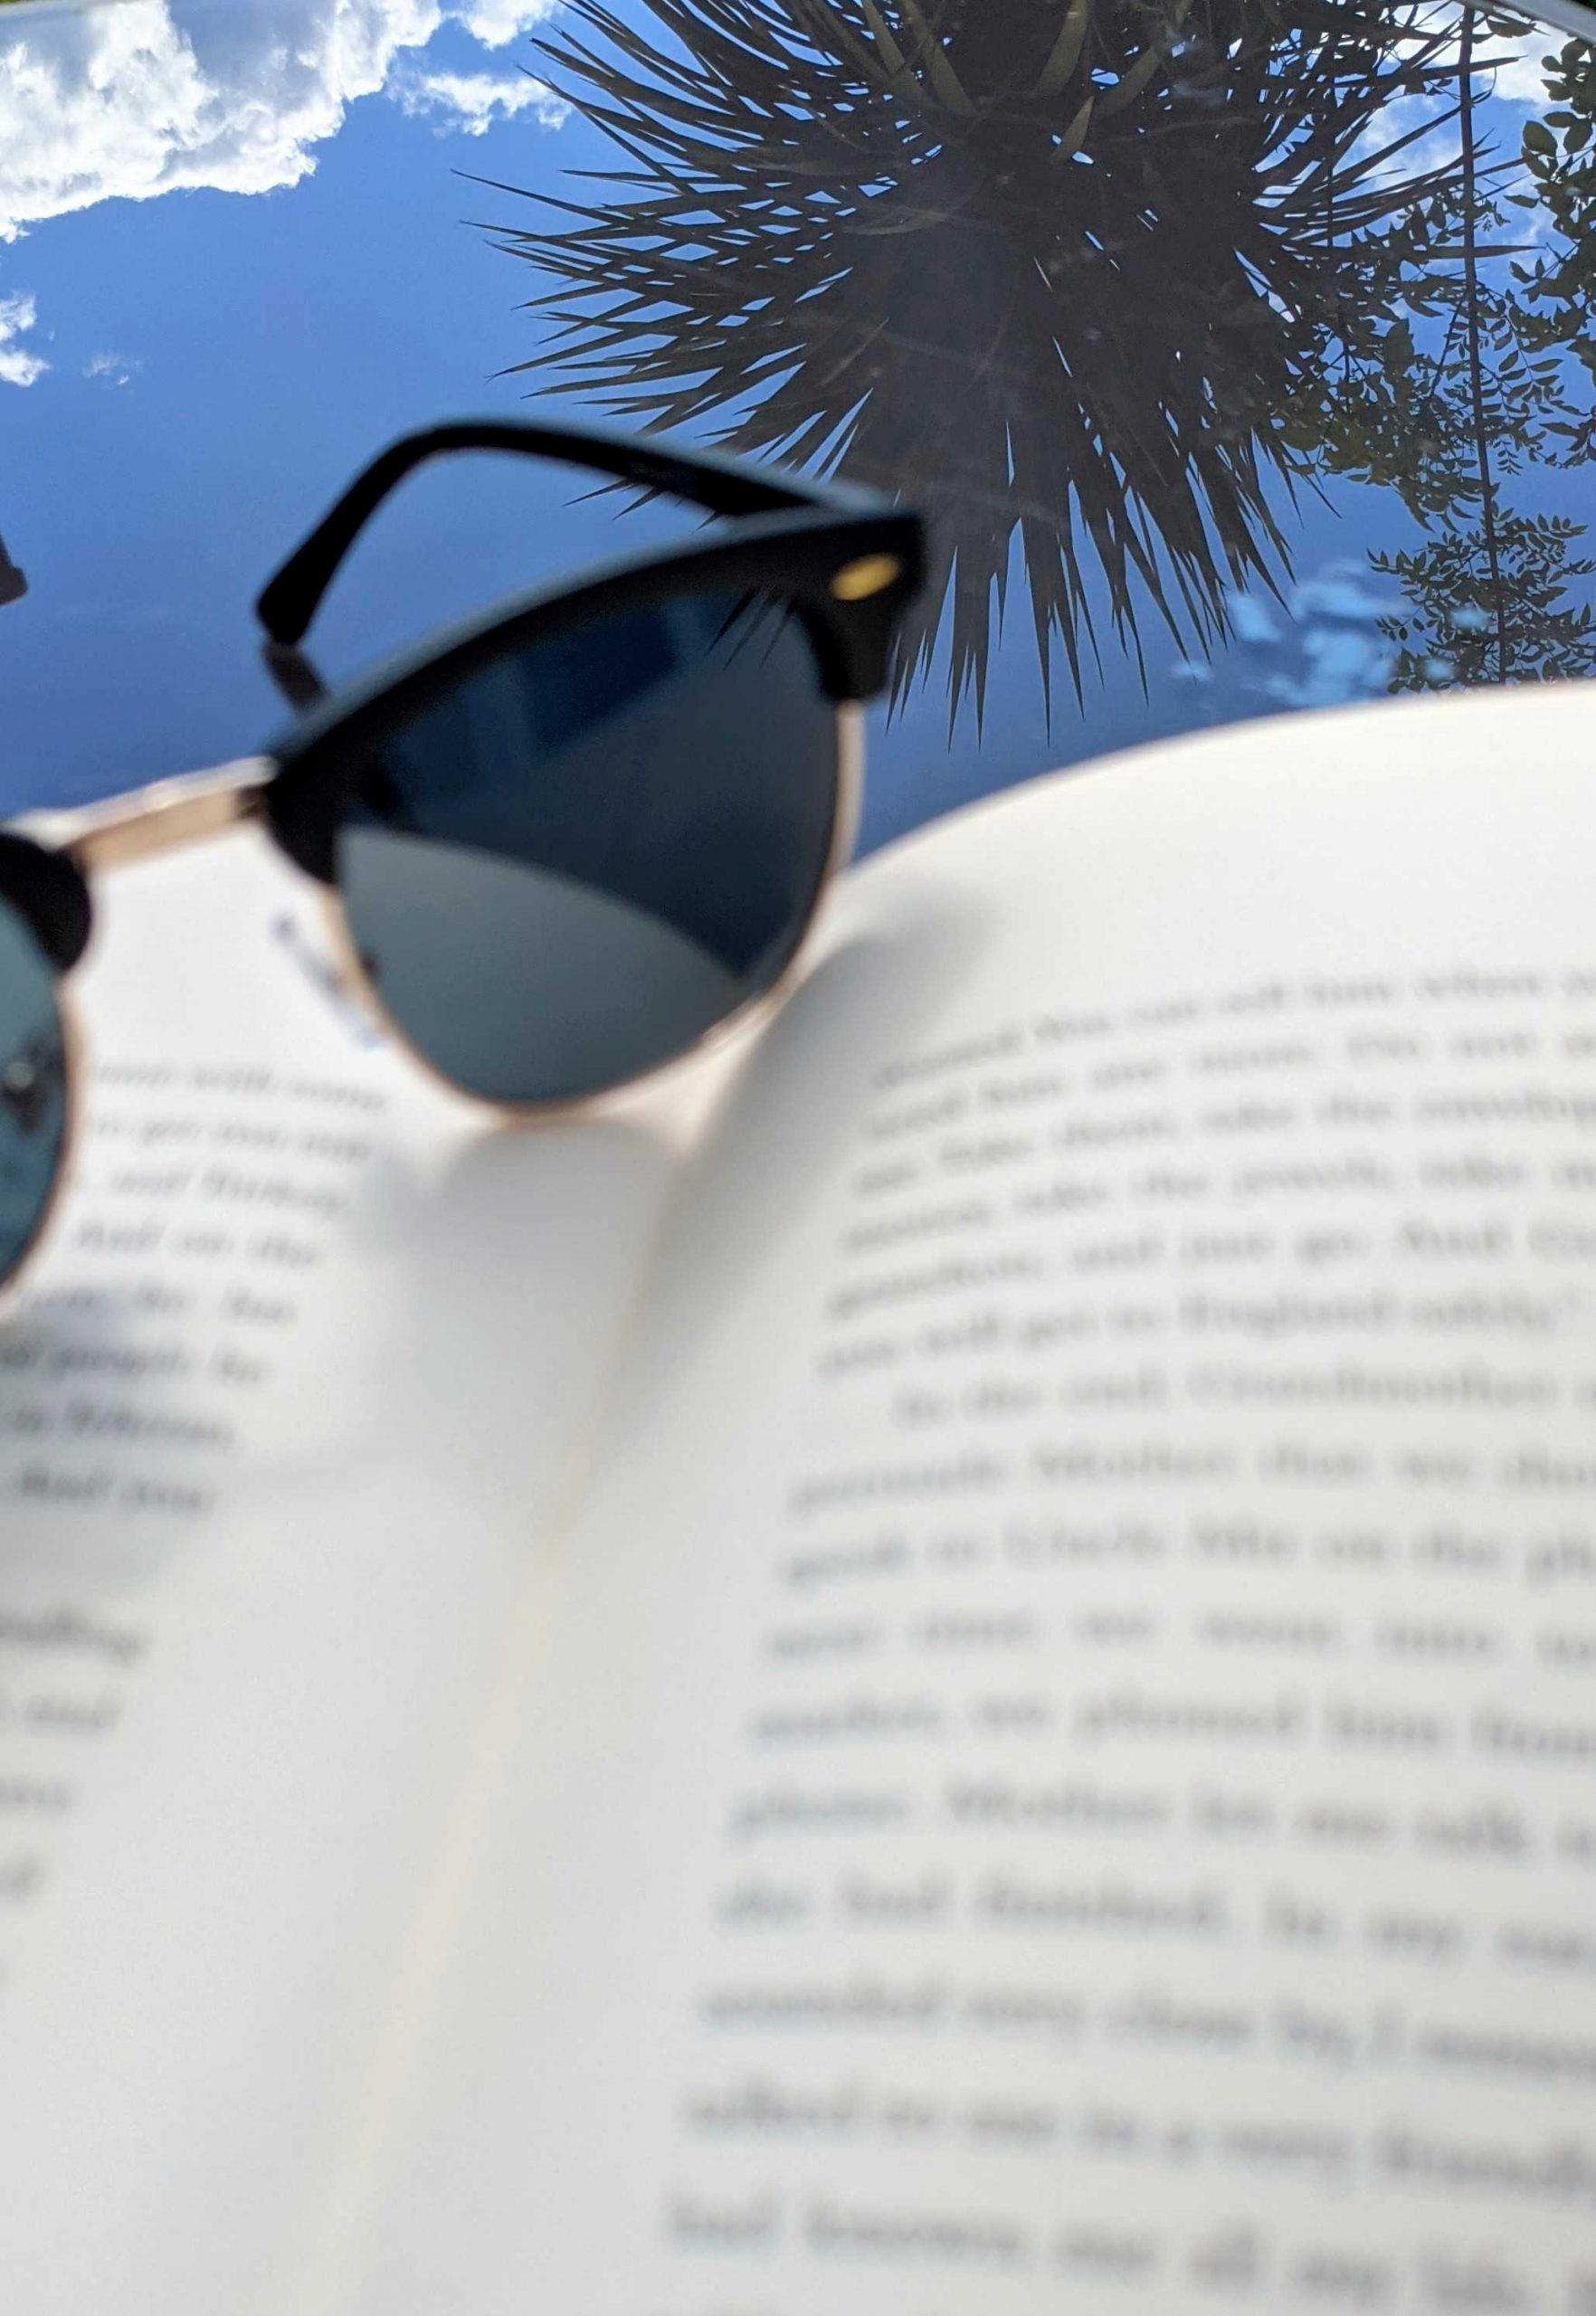 Amelia's submission to the Great British Photography Challenge shows a close up of the top of a book with sunglasses laid on top, and a blue sky and trees in the background.